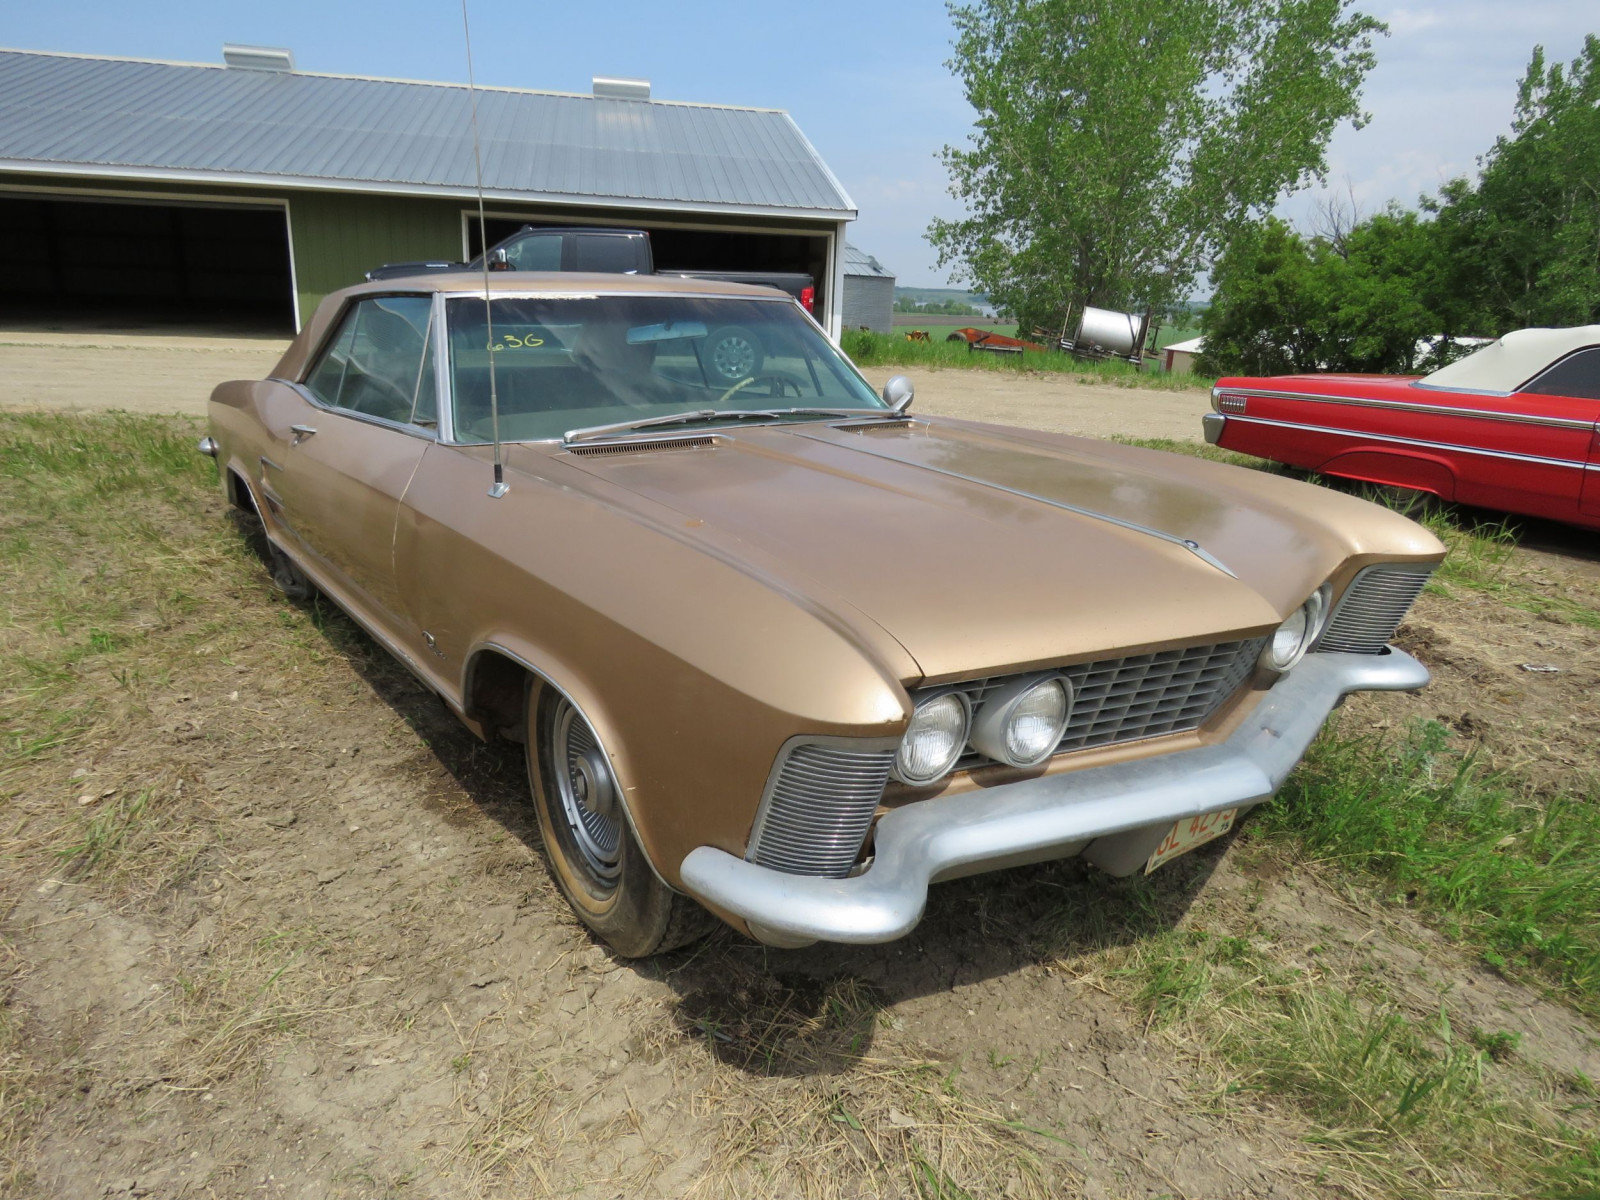 1967 Buick Riviera Coupe 7J1057263 - Image 1